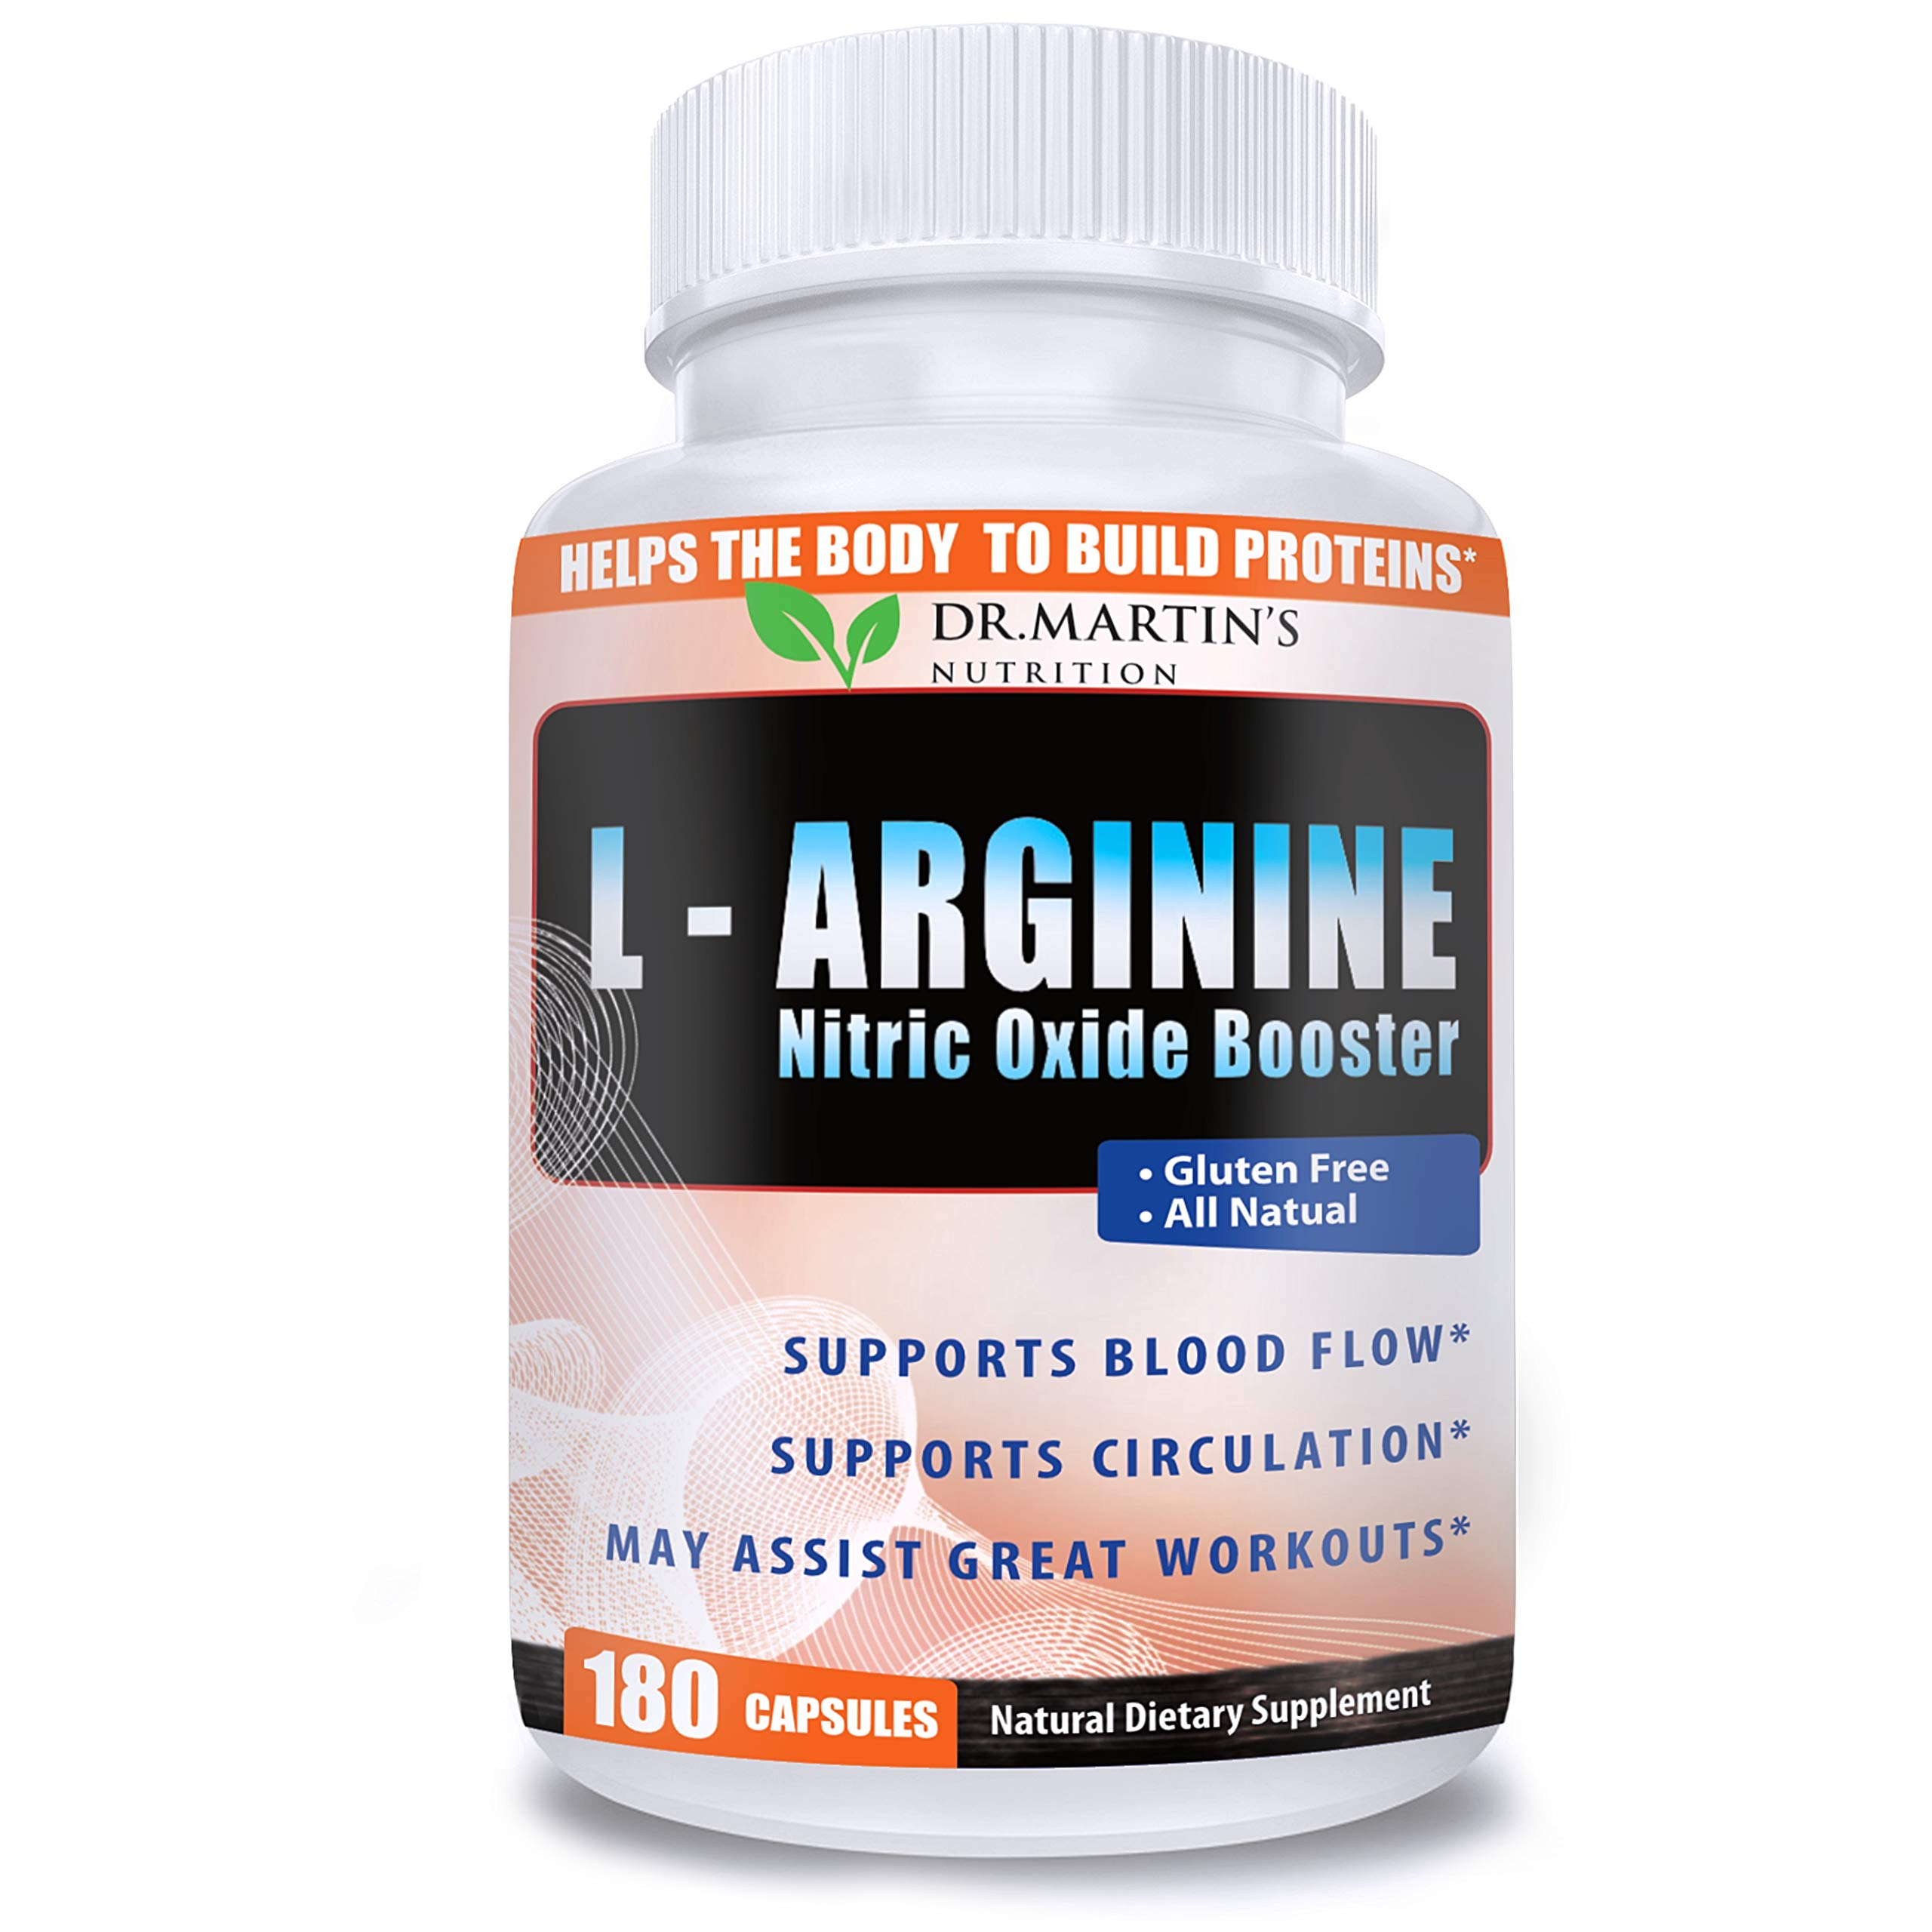 Extra Strength L Arginine 1340mg Nitric Oxide Supplements - 180 Capsules | for Muscle Growth, Increase Energy & Endurance & Boost Heart Health | Best Amazon Value 3 Months Supply by DR. MARTIN'S NUTRITION